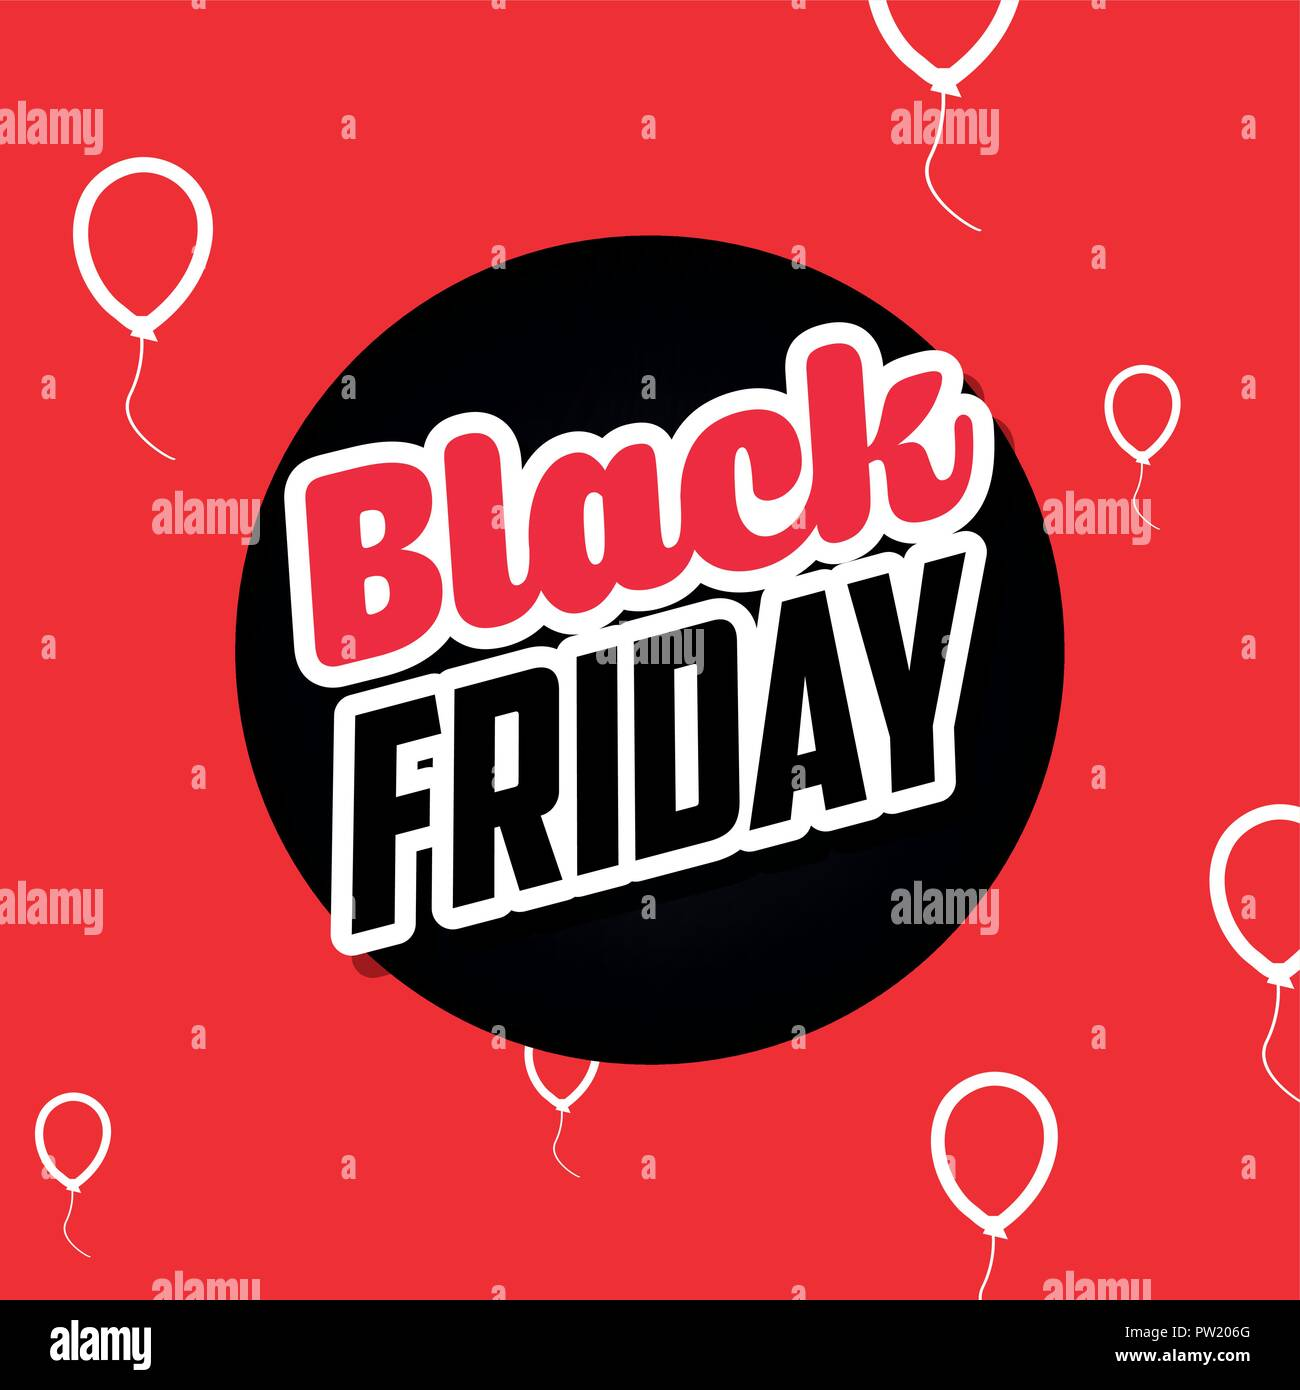 Black Friday Stuttgart Balloons Sales Stock Photos And Balloons Sales Stock Images